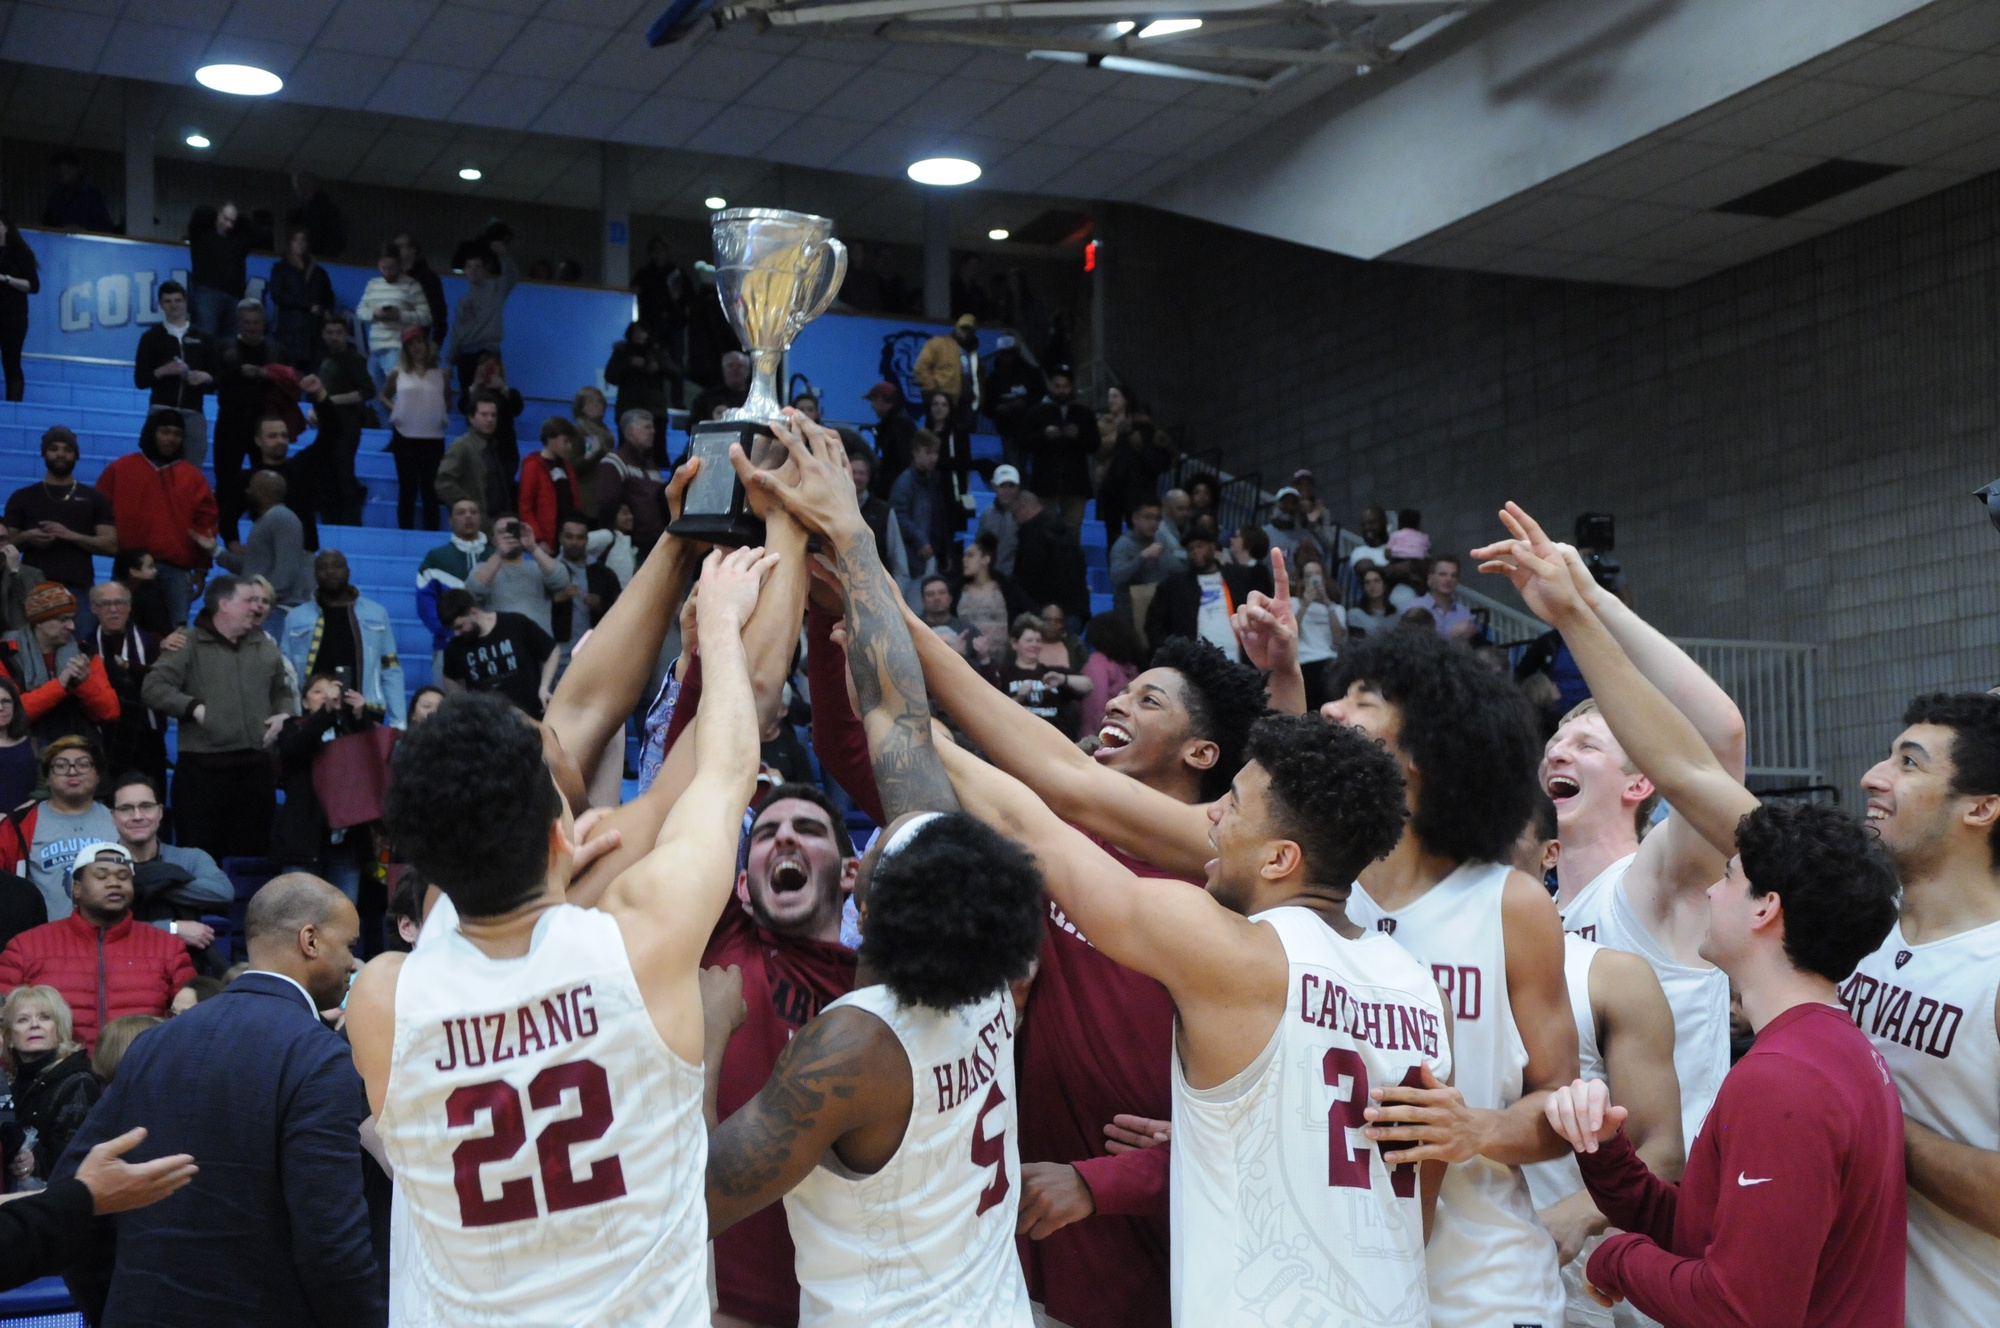 The Harvard men's basketball team earned its seventh Ivy League regular season title with a 83-81 victory over Columbia.